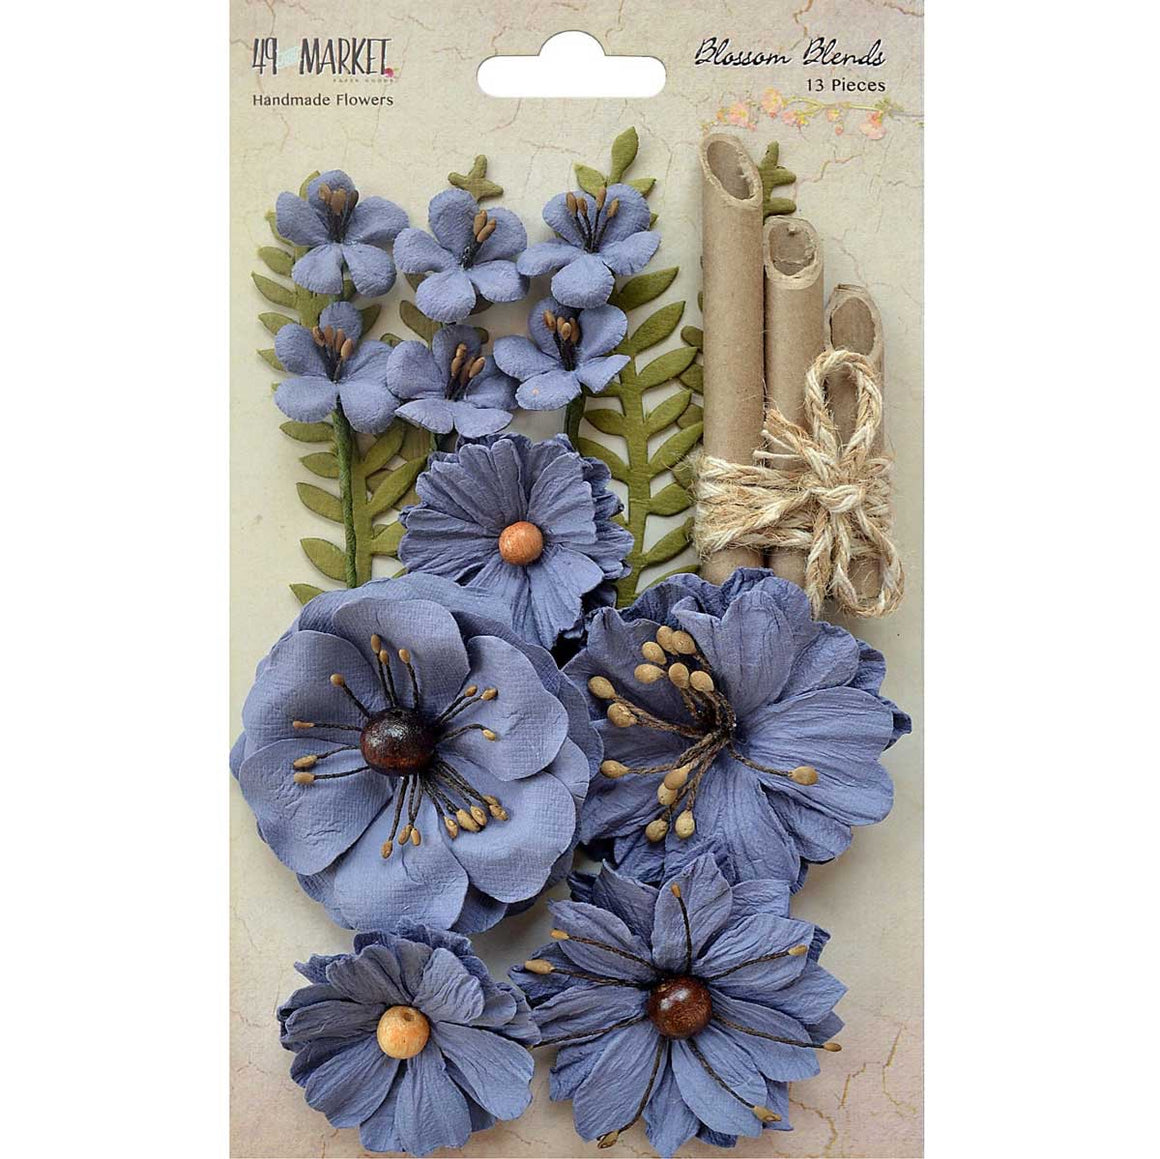 49andMarket Flowers blossom blends- bluebell